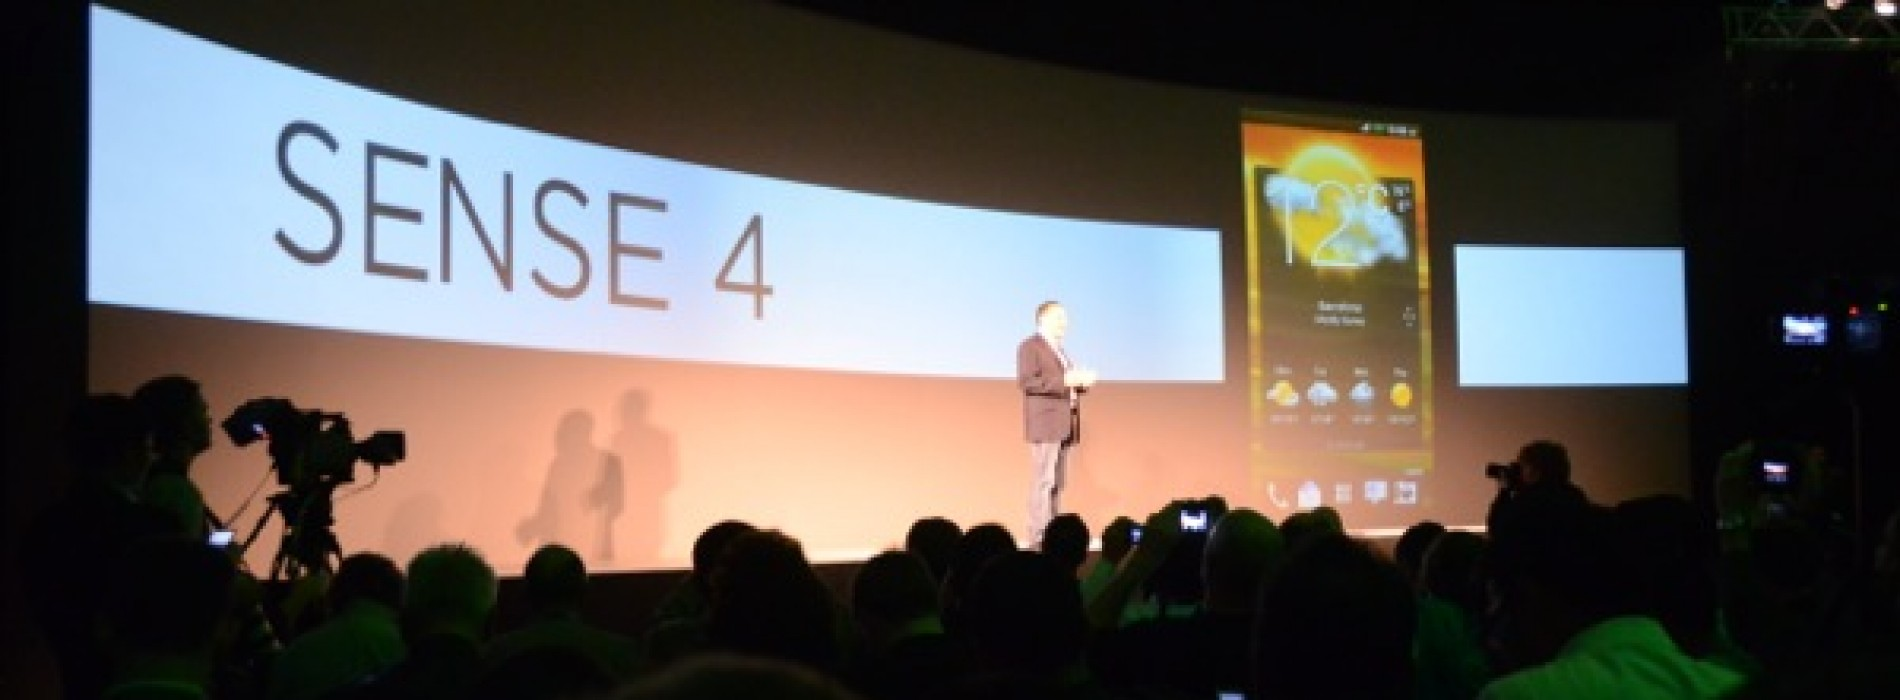 HTC blows us away at MWC, announces countless new features